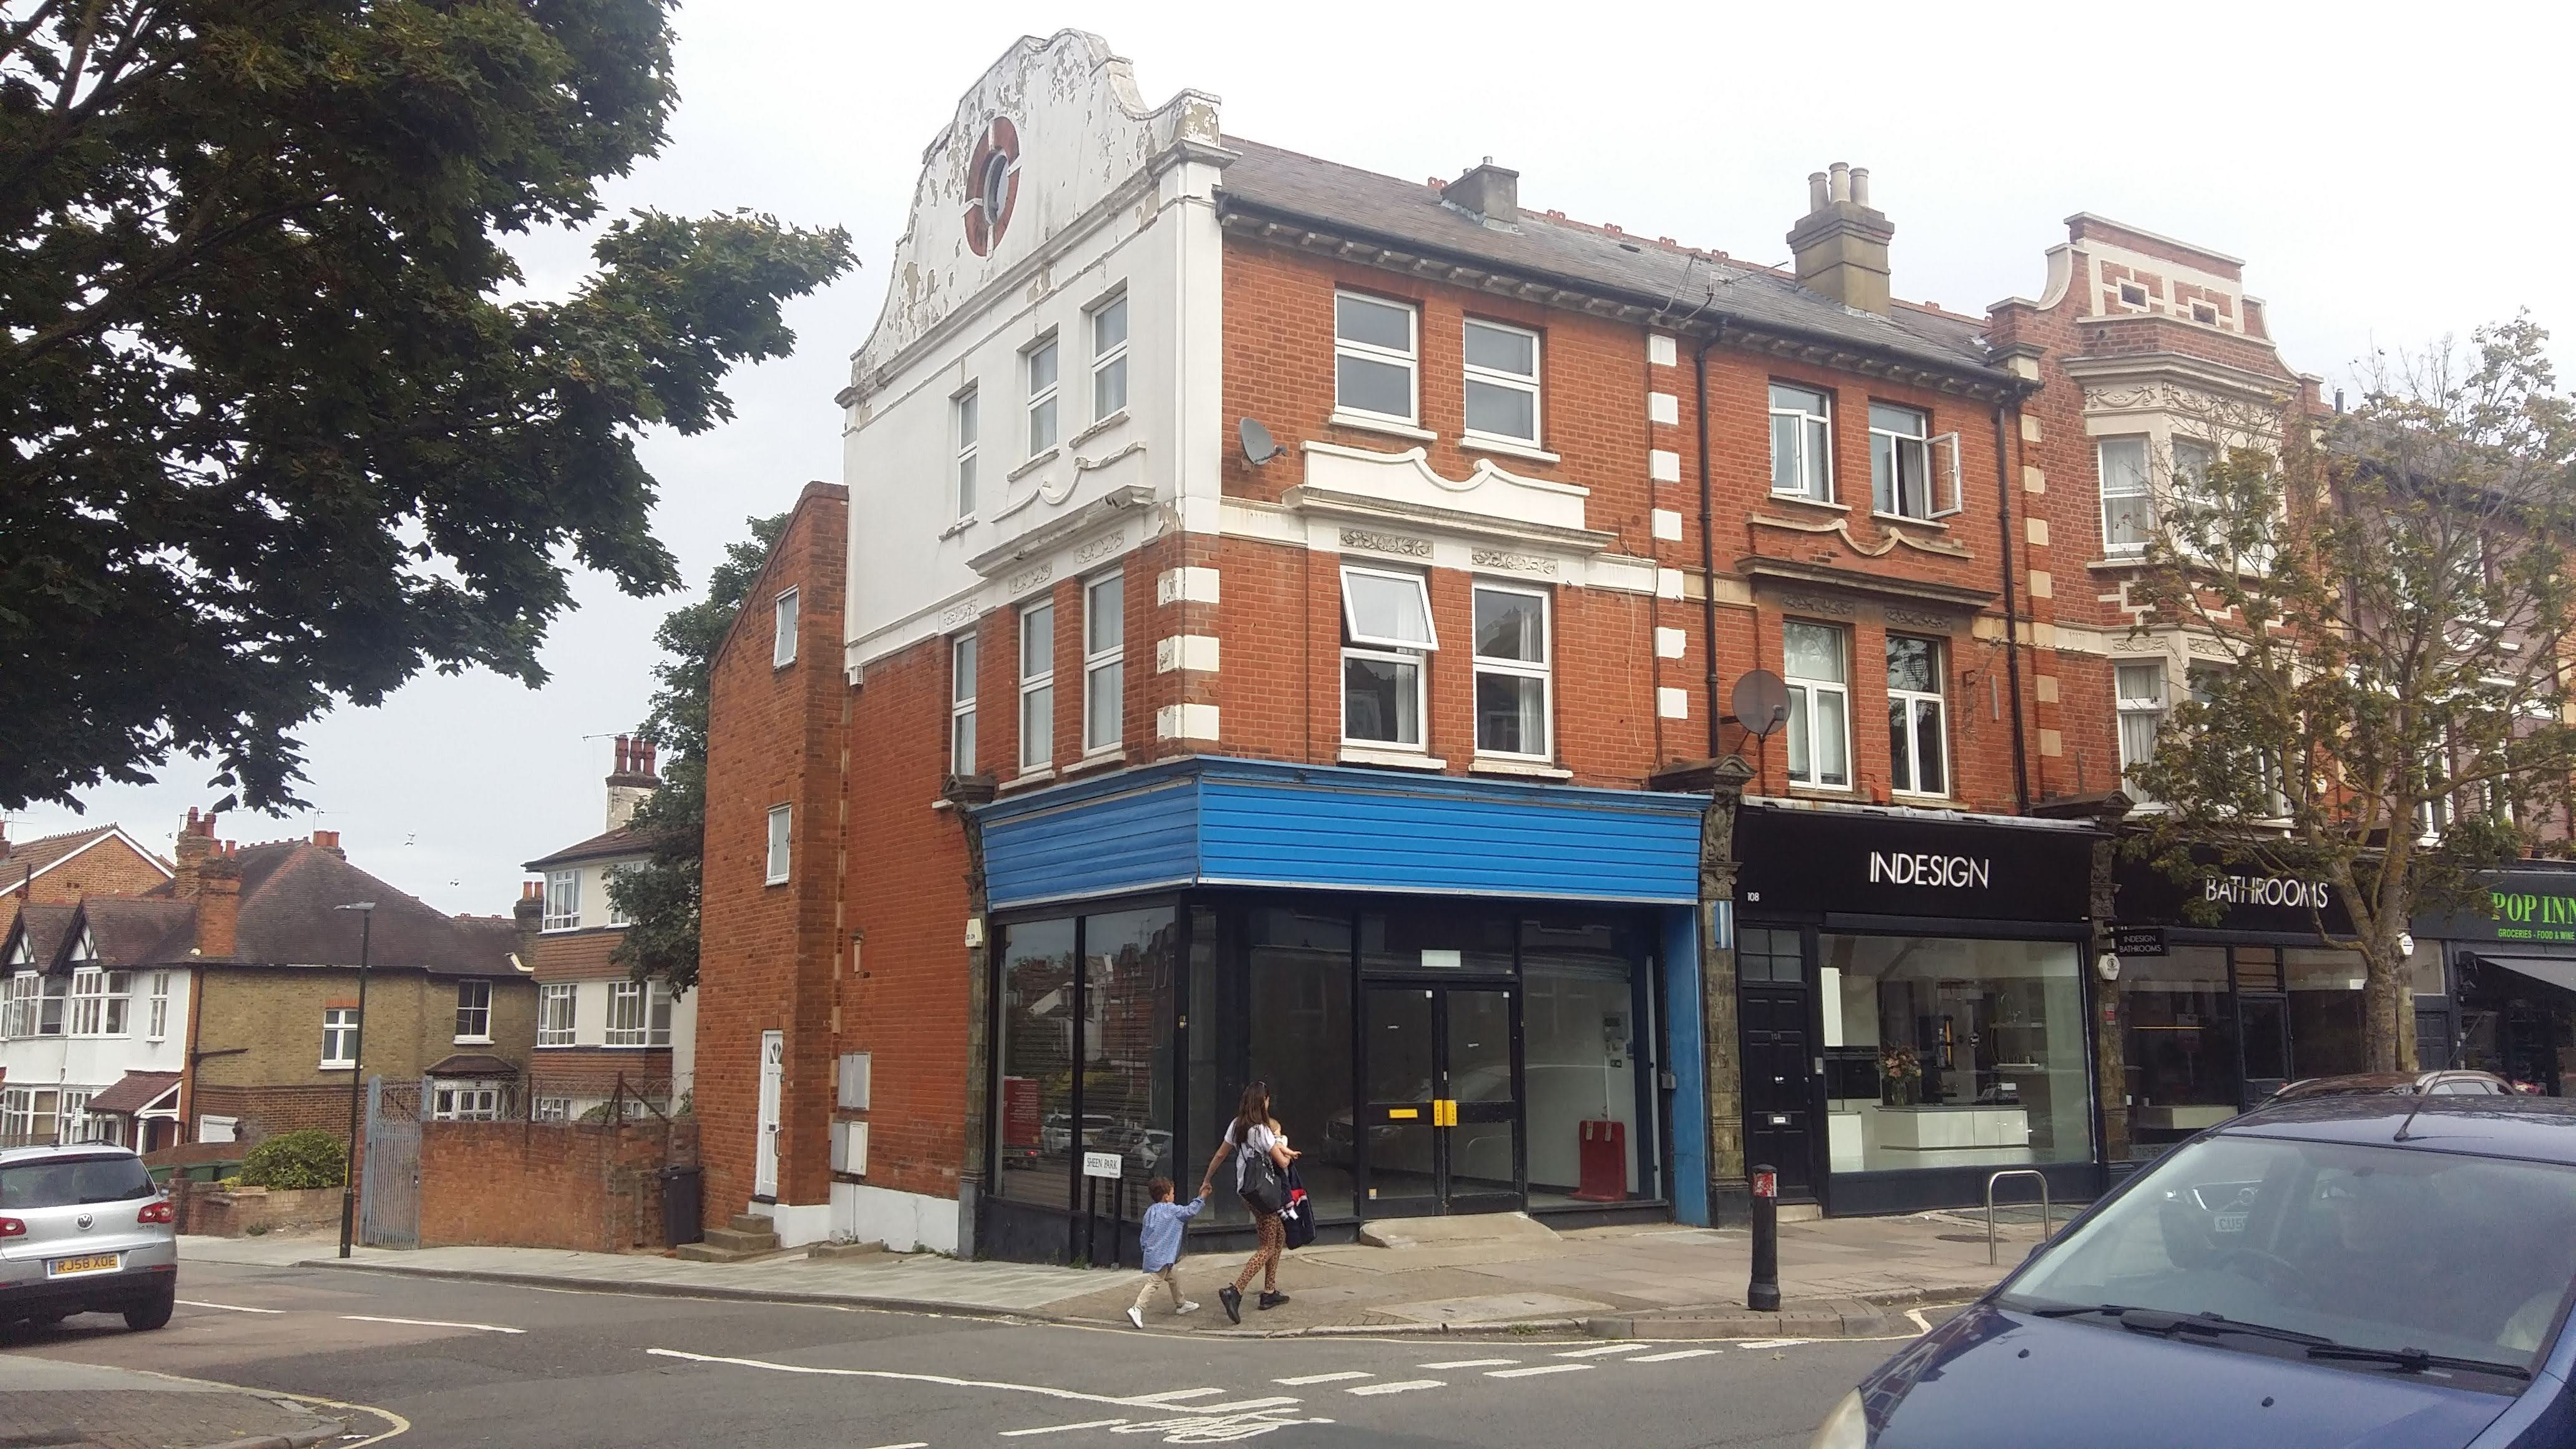 106 Sheen Road, Richmond Upon Thames, TW9 1UR